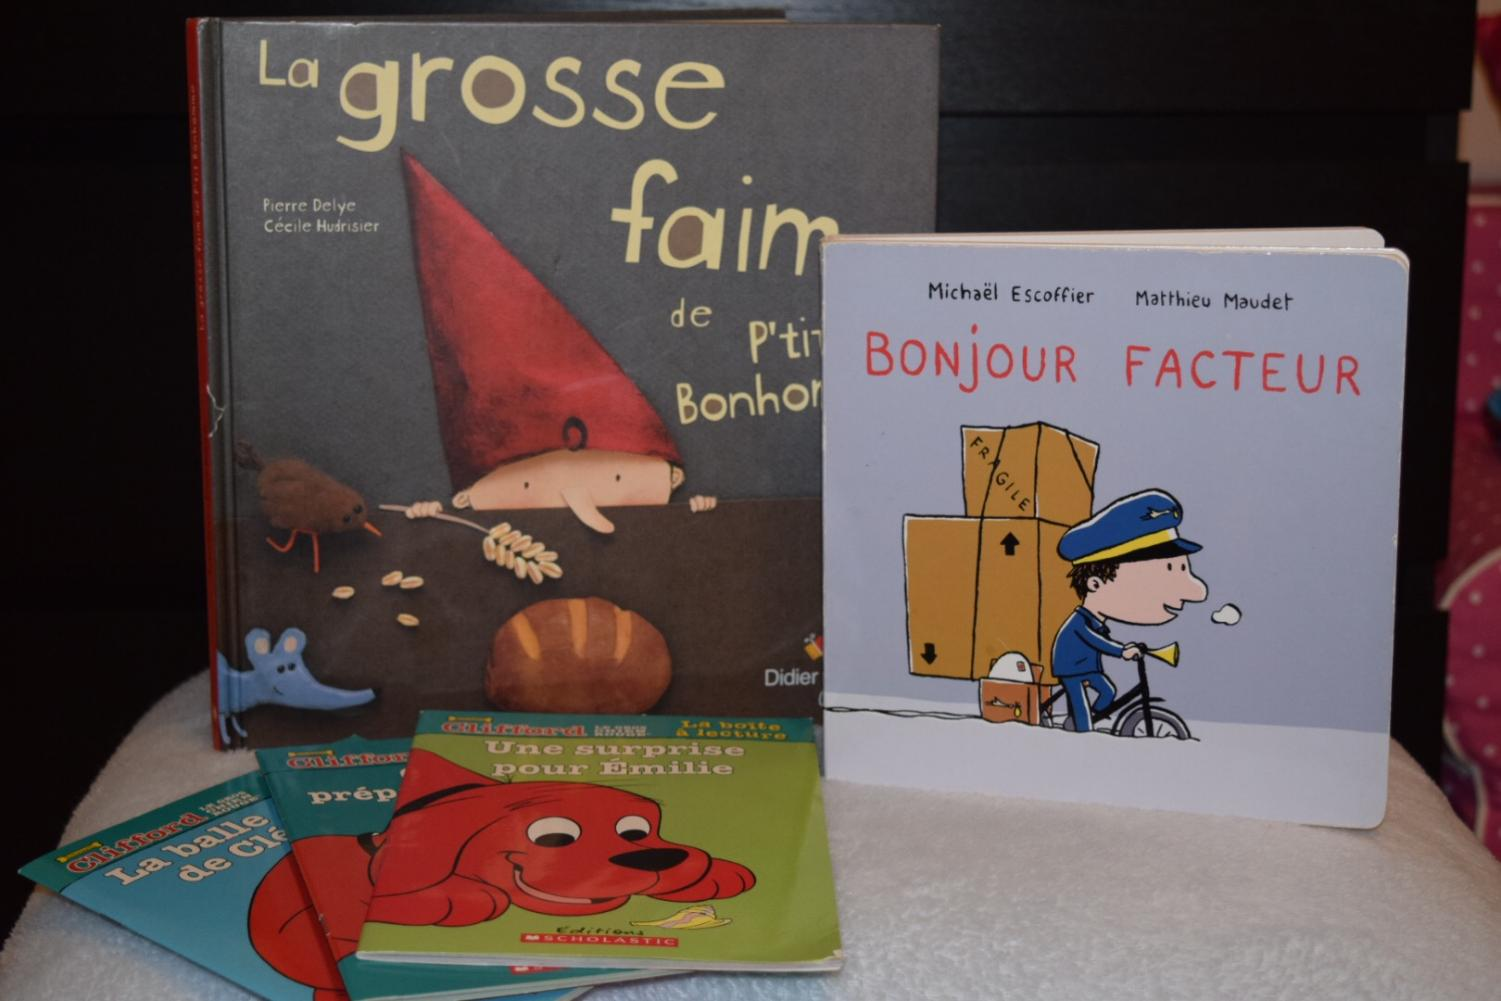 A collection of French children's books featuring gender-based pronouns.